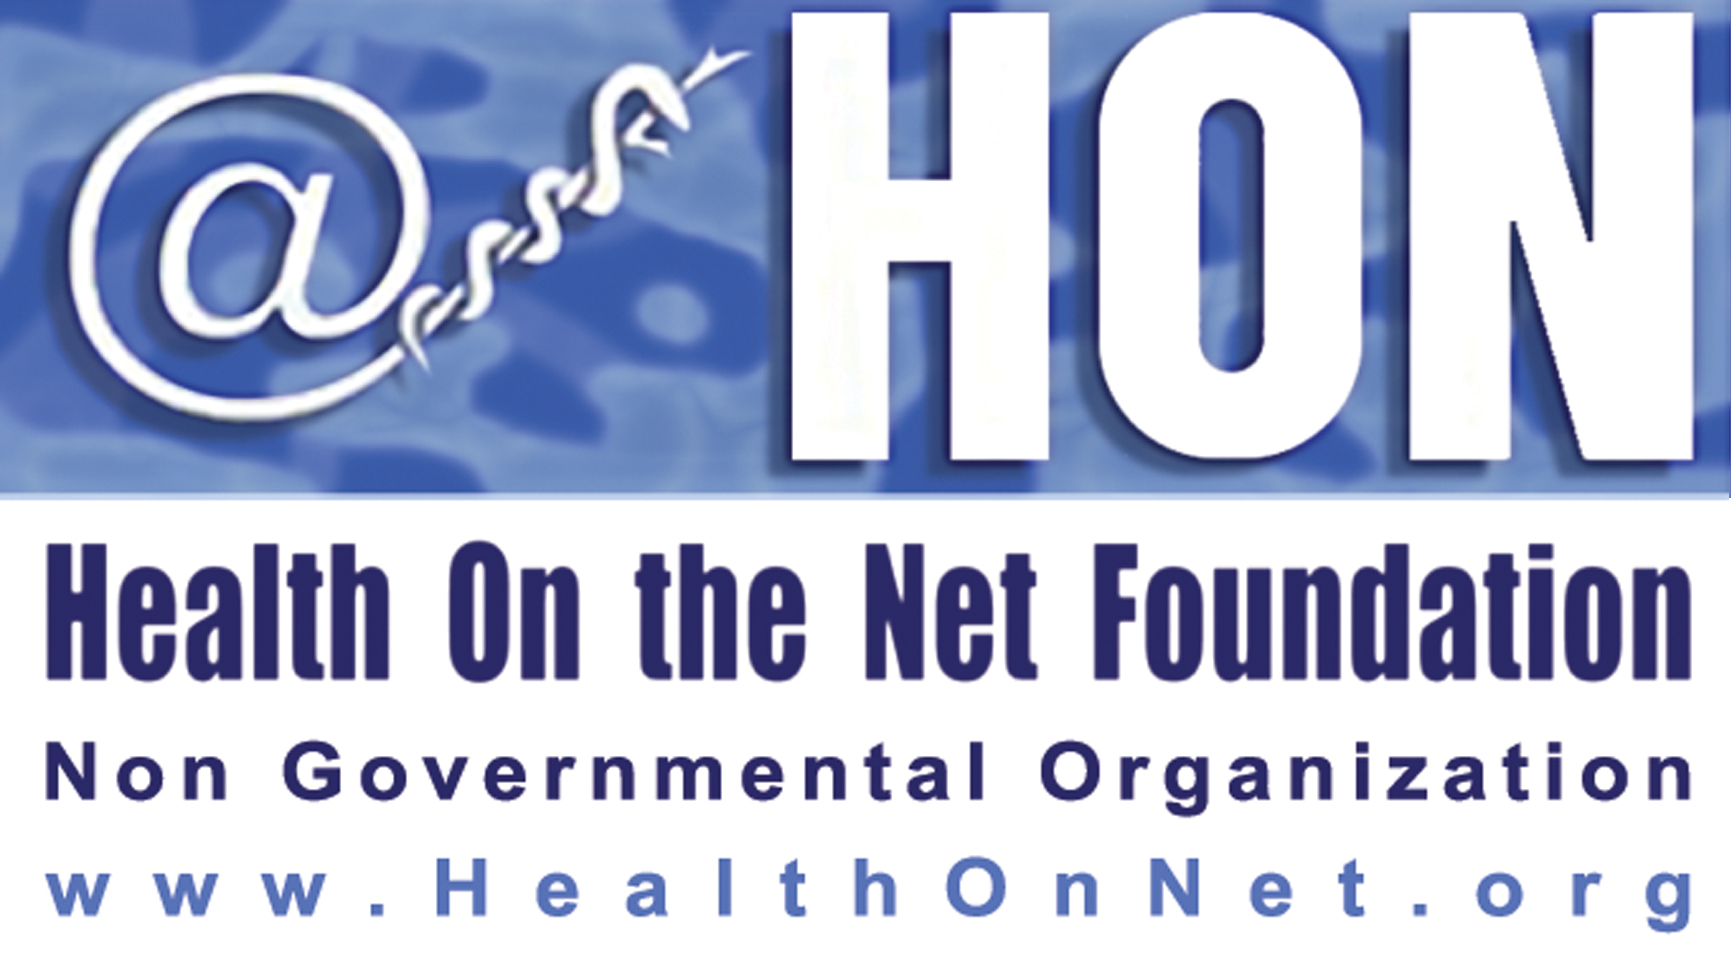 Health on the Net Foundation